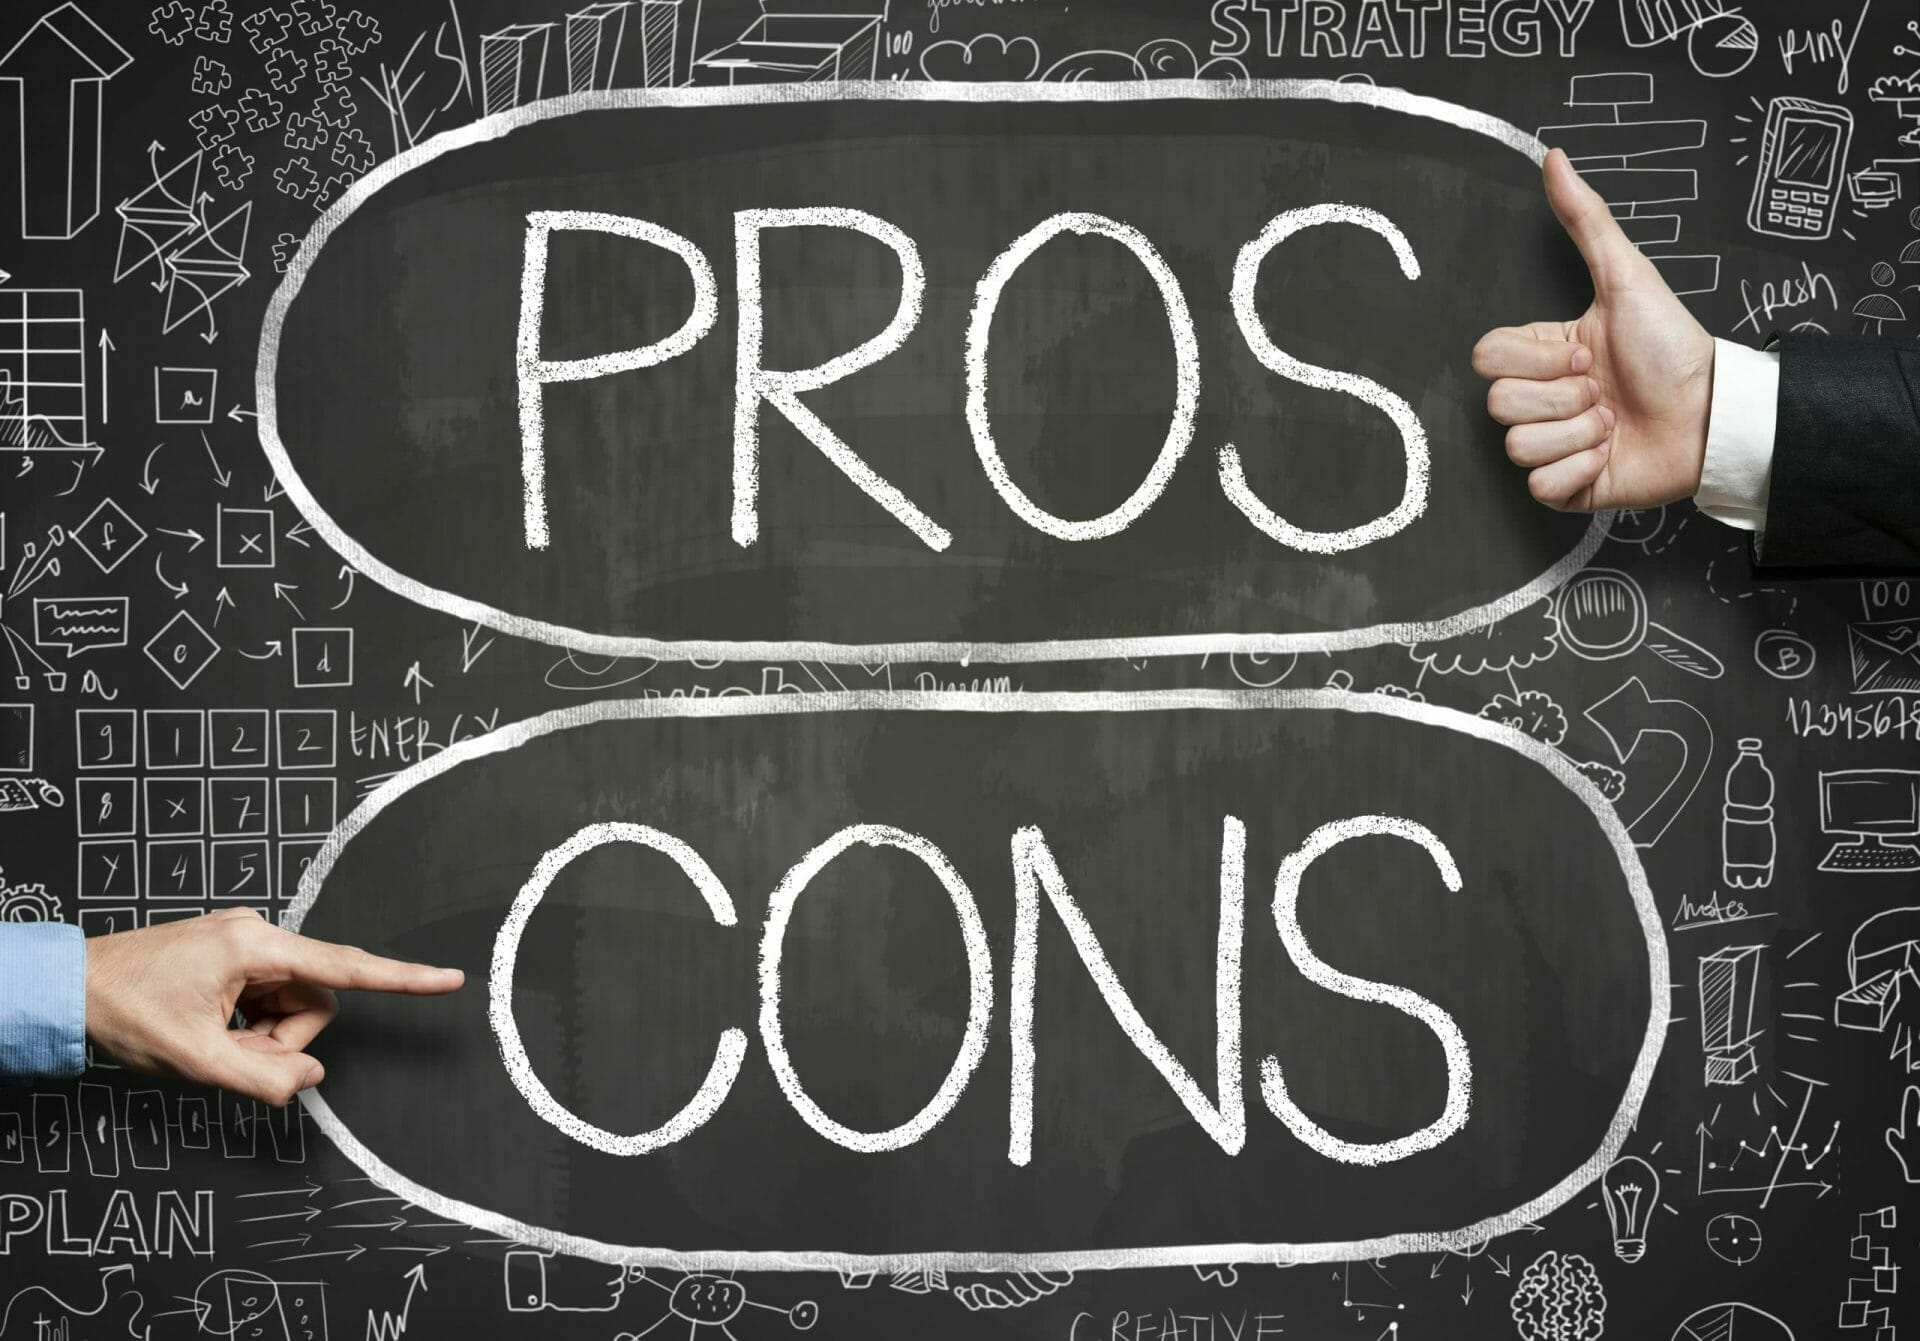 Pros and cons on a whiteboard